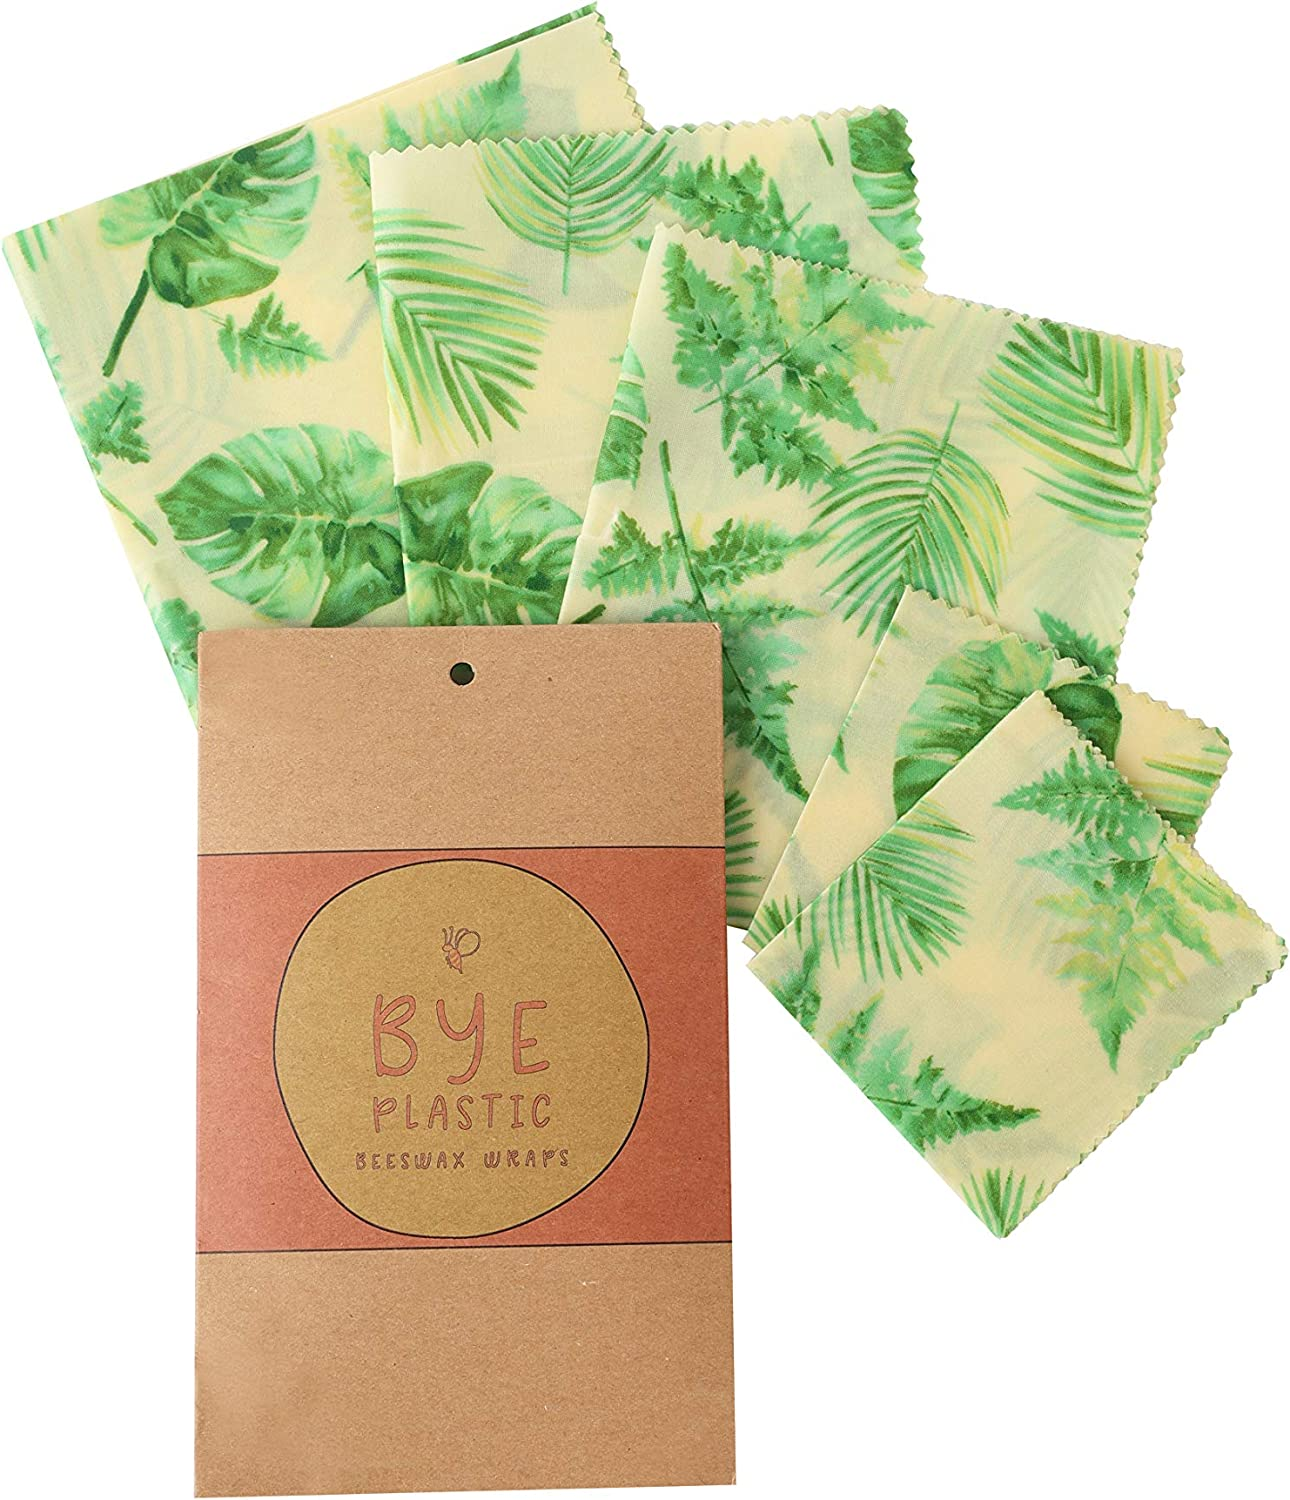 Reusable Beeswax Food Wraps - Pack Of 5 Eco Friendly Reusable Plastic Wrap Replacement - Beeswax Wraps - 100% Natural and Biodegradable with Zero Waste